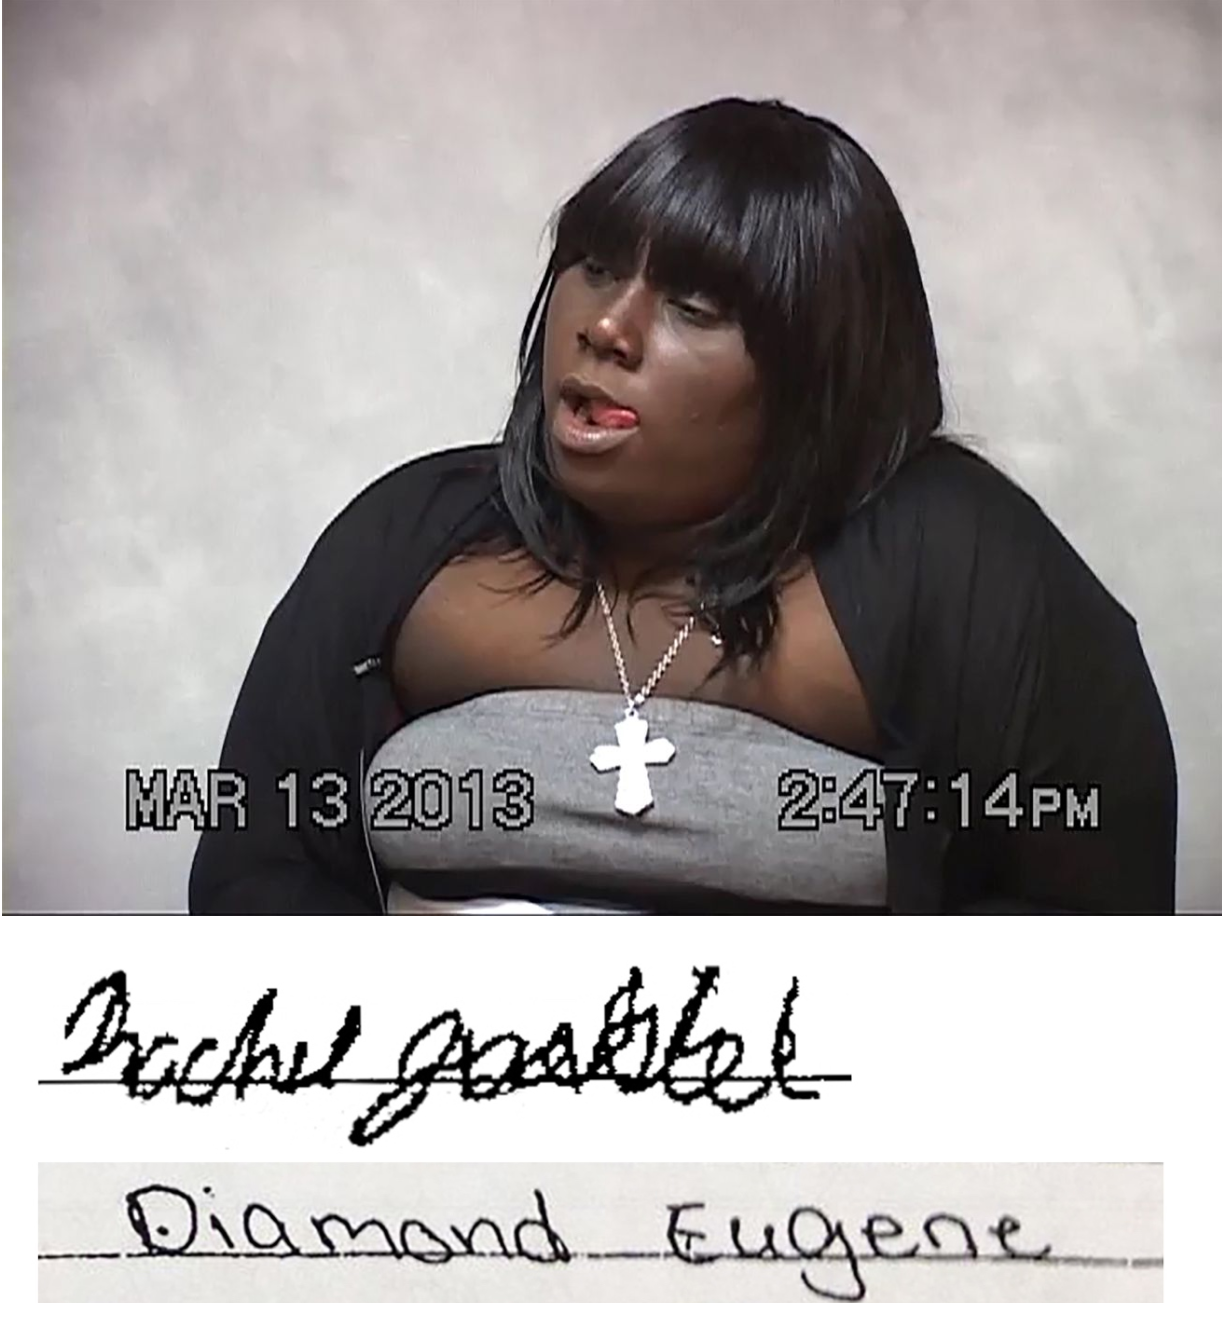 Rachel Jeantel, who testified in the Trayvon Martin case, and a comparison of her signature with that on a letter she says she signed (Joel Gilbert/The Trayvon Hoax)